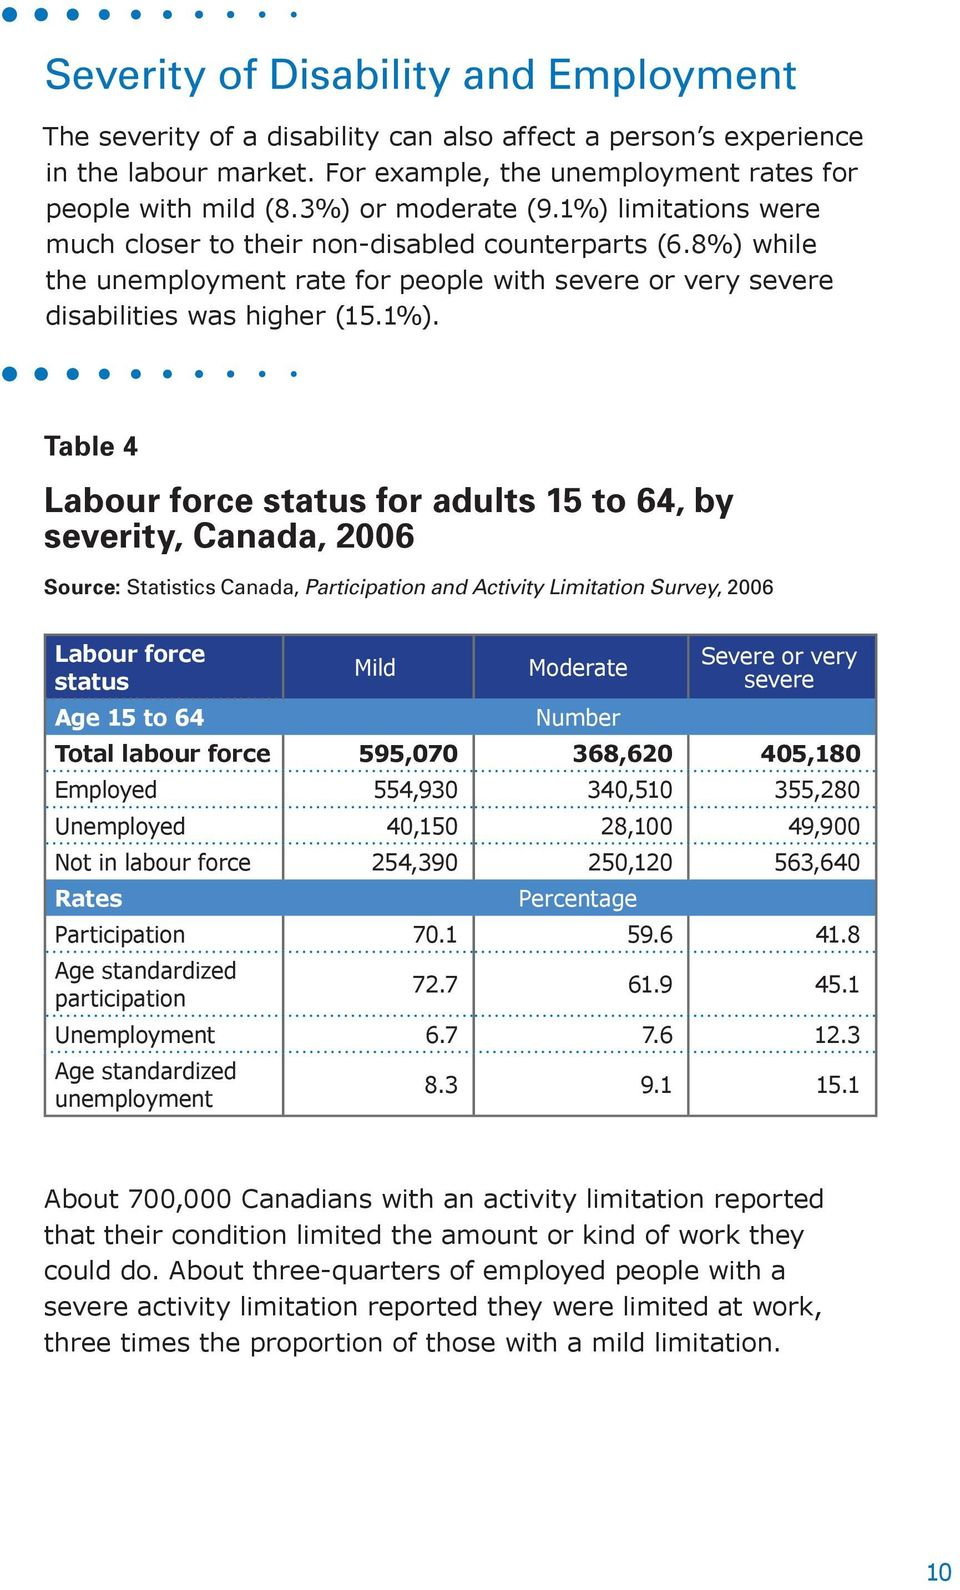 15 to 64, by severity, Canada, 2006 Source: Statistics Canada, Participation and Activity Limitation Survey, 2006 Labour force status Age 15 to 64 Mild Moderate Severe or very severe Total labour